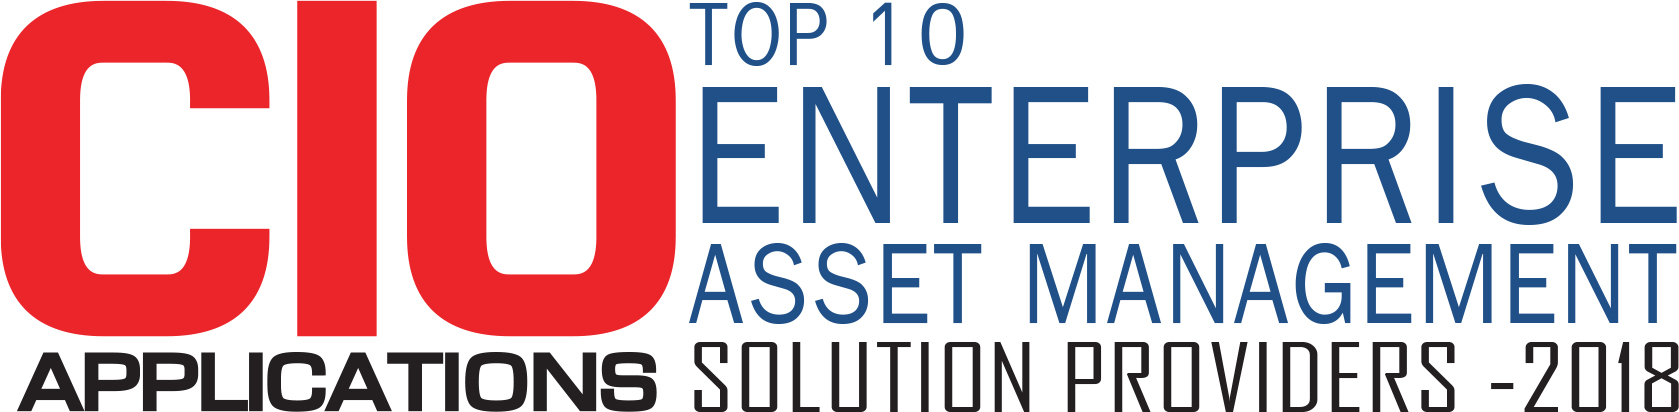 Top 10 Enterprise Asset Management Solution Companies - 2018